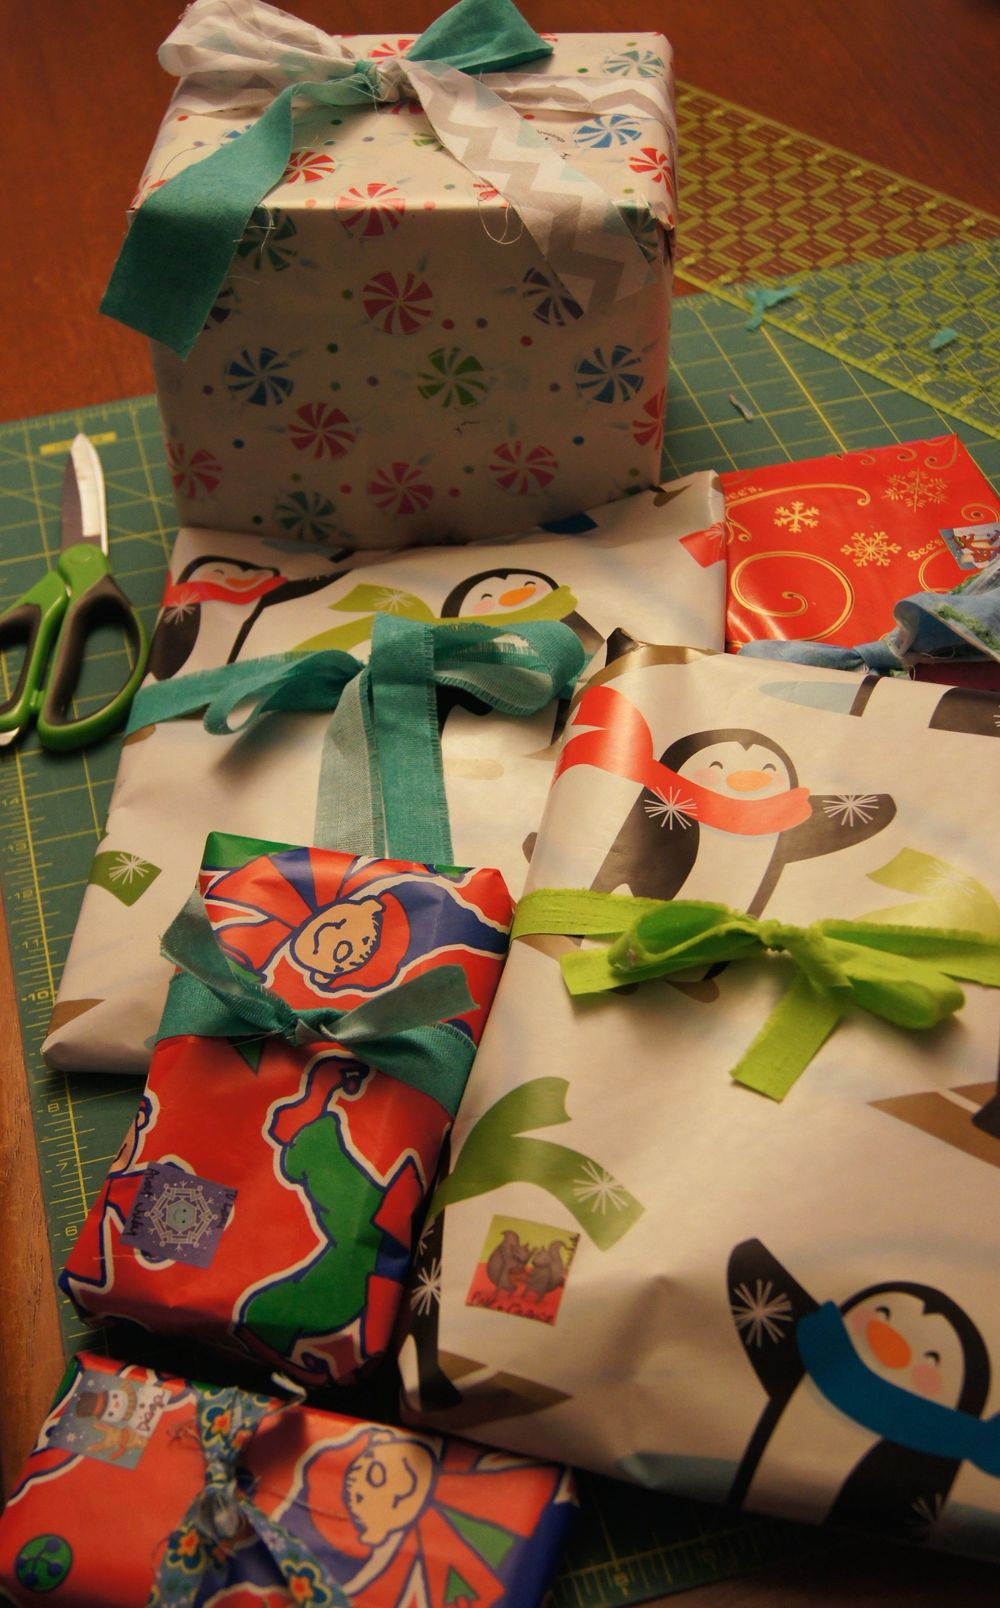 Gifts with fabric strip scraps in place of ribbons